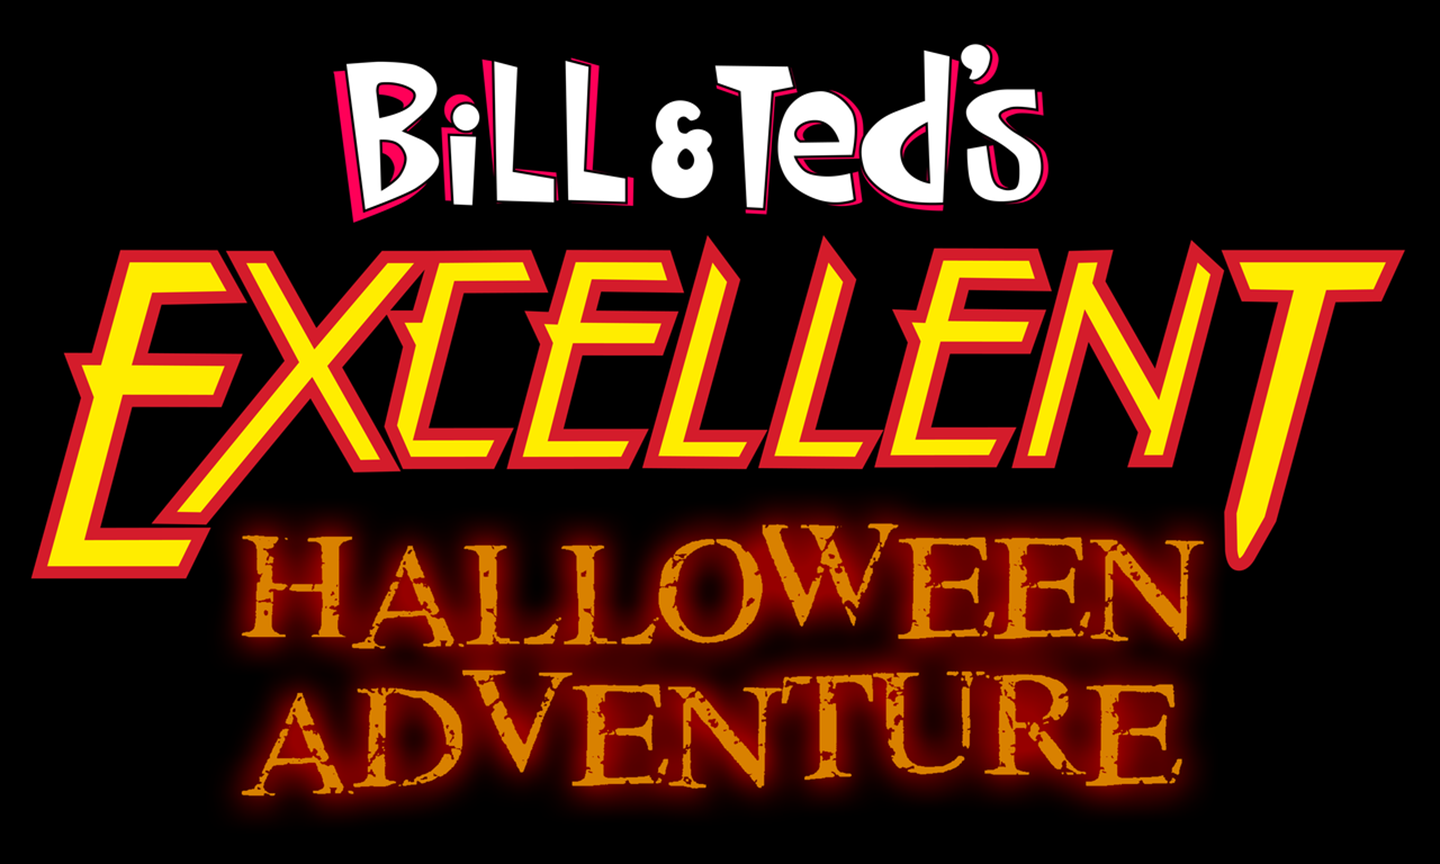 Bill and Ted's Excellent Halloween Adventure at Halloween Horror Nights